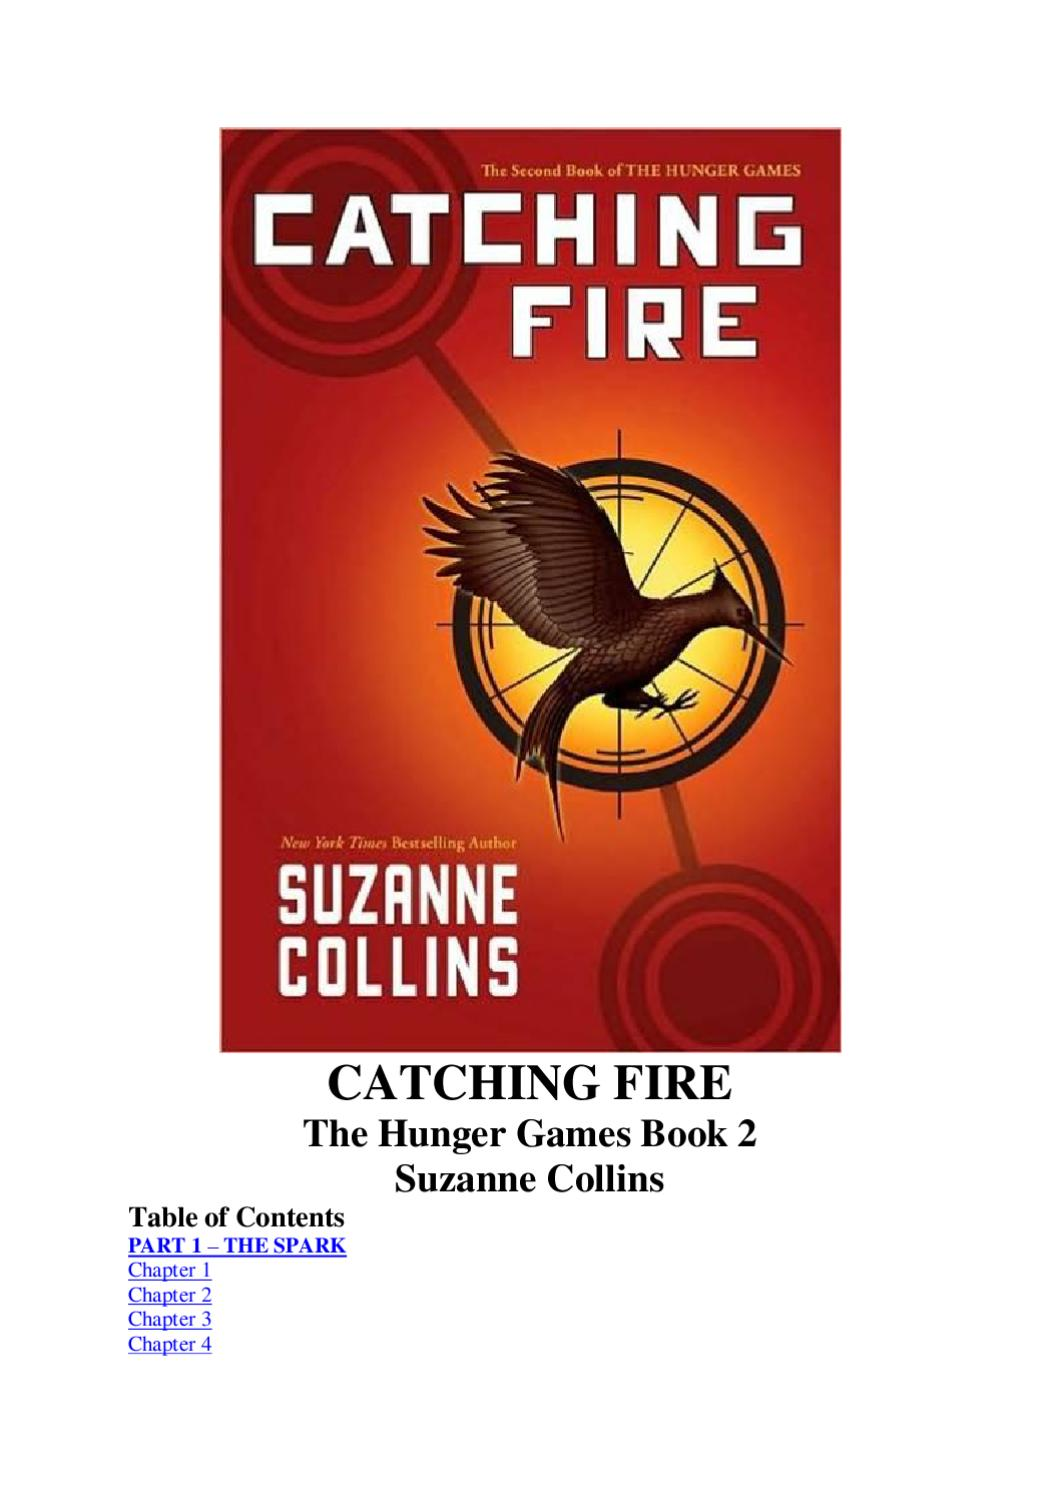 essays about hunger games This free english literature essay on essay: the hunger games (novel) is perfect for english literature students to use as an example.